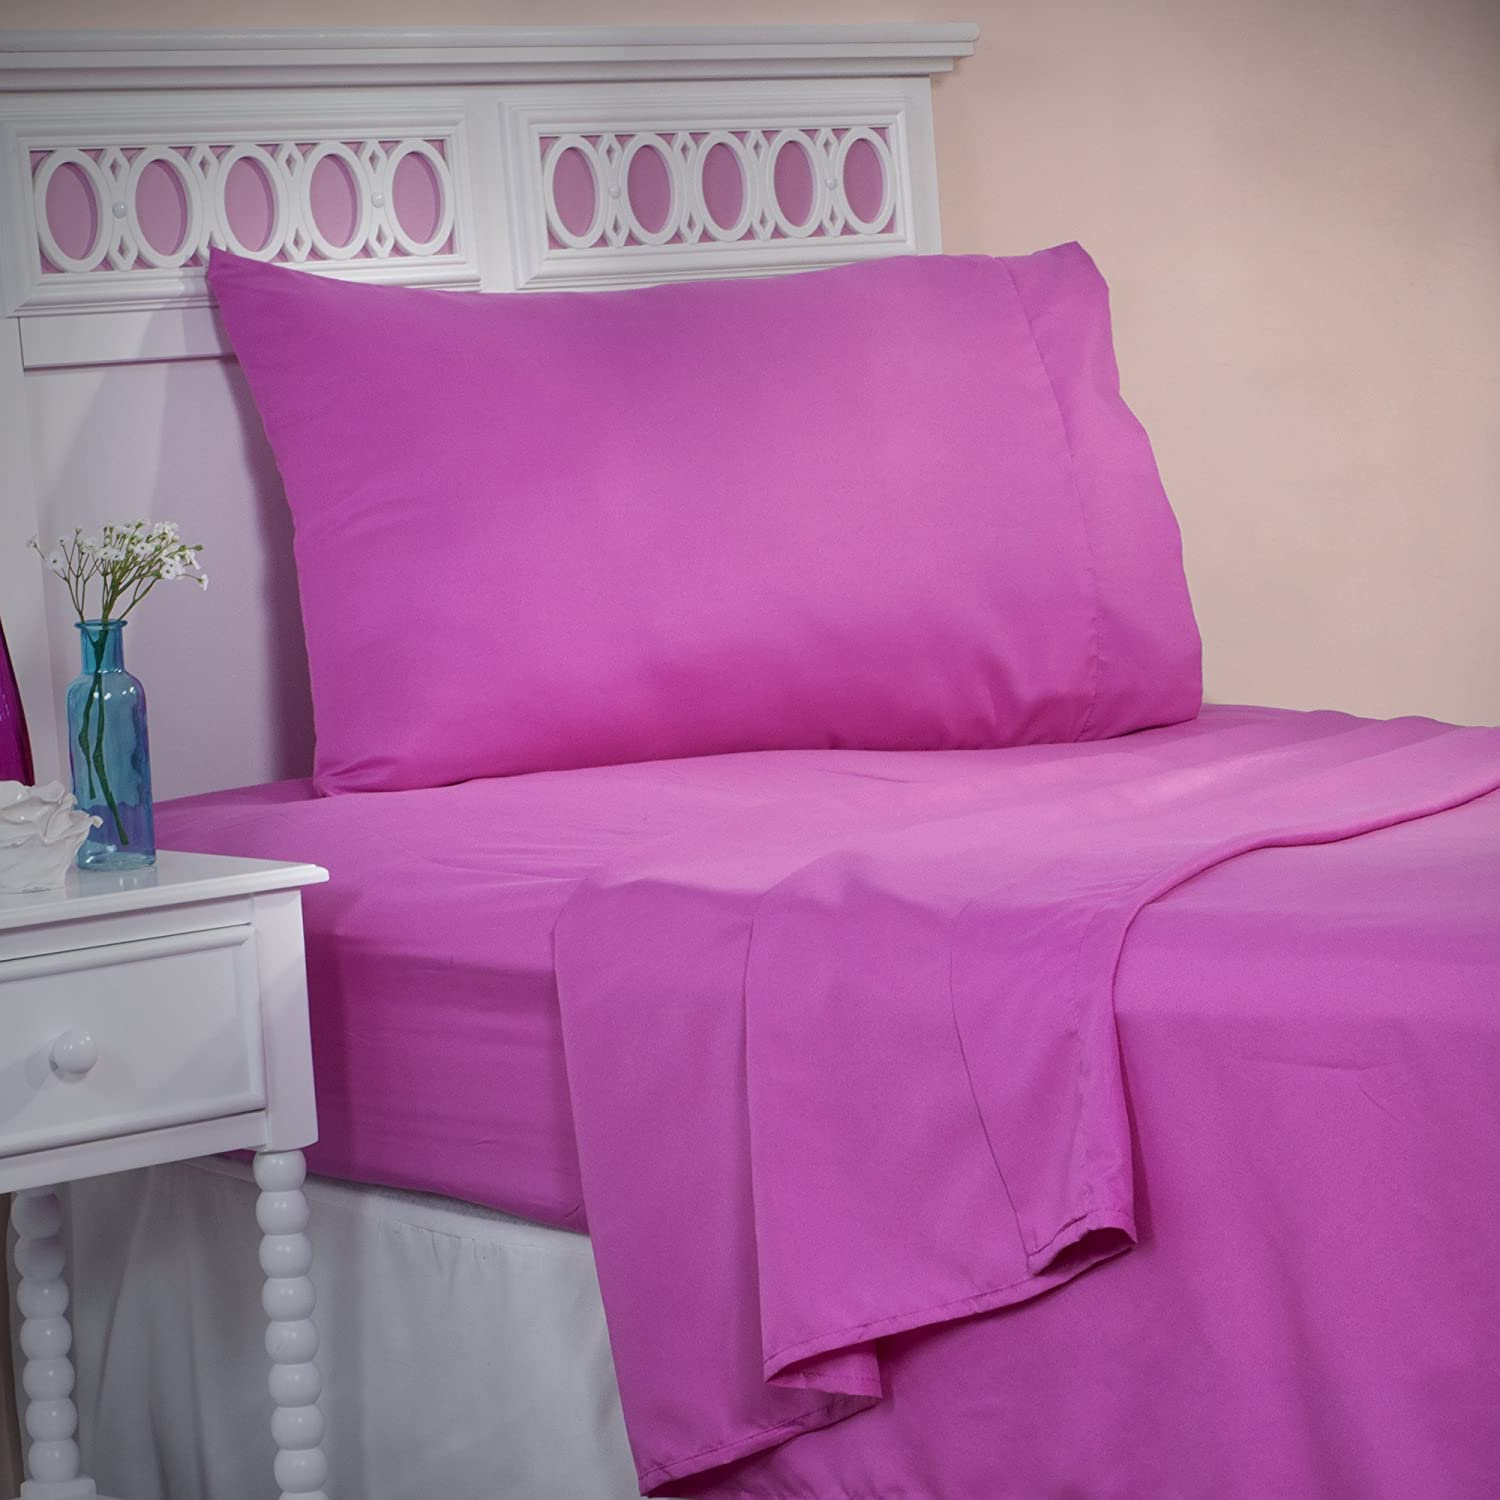 Bedford Home 66A-26072 Series 1200 3-Piece Somerset Homelet Set, Twin, Pink